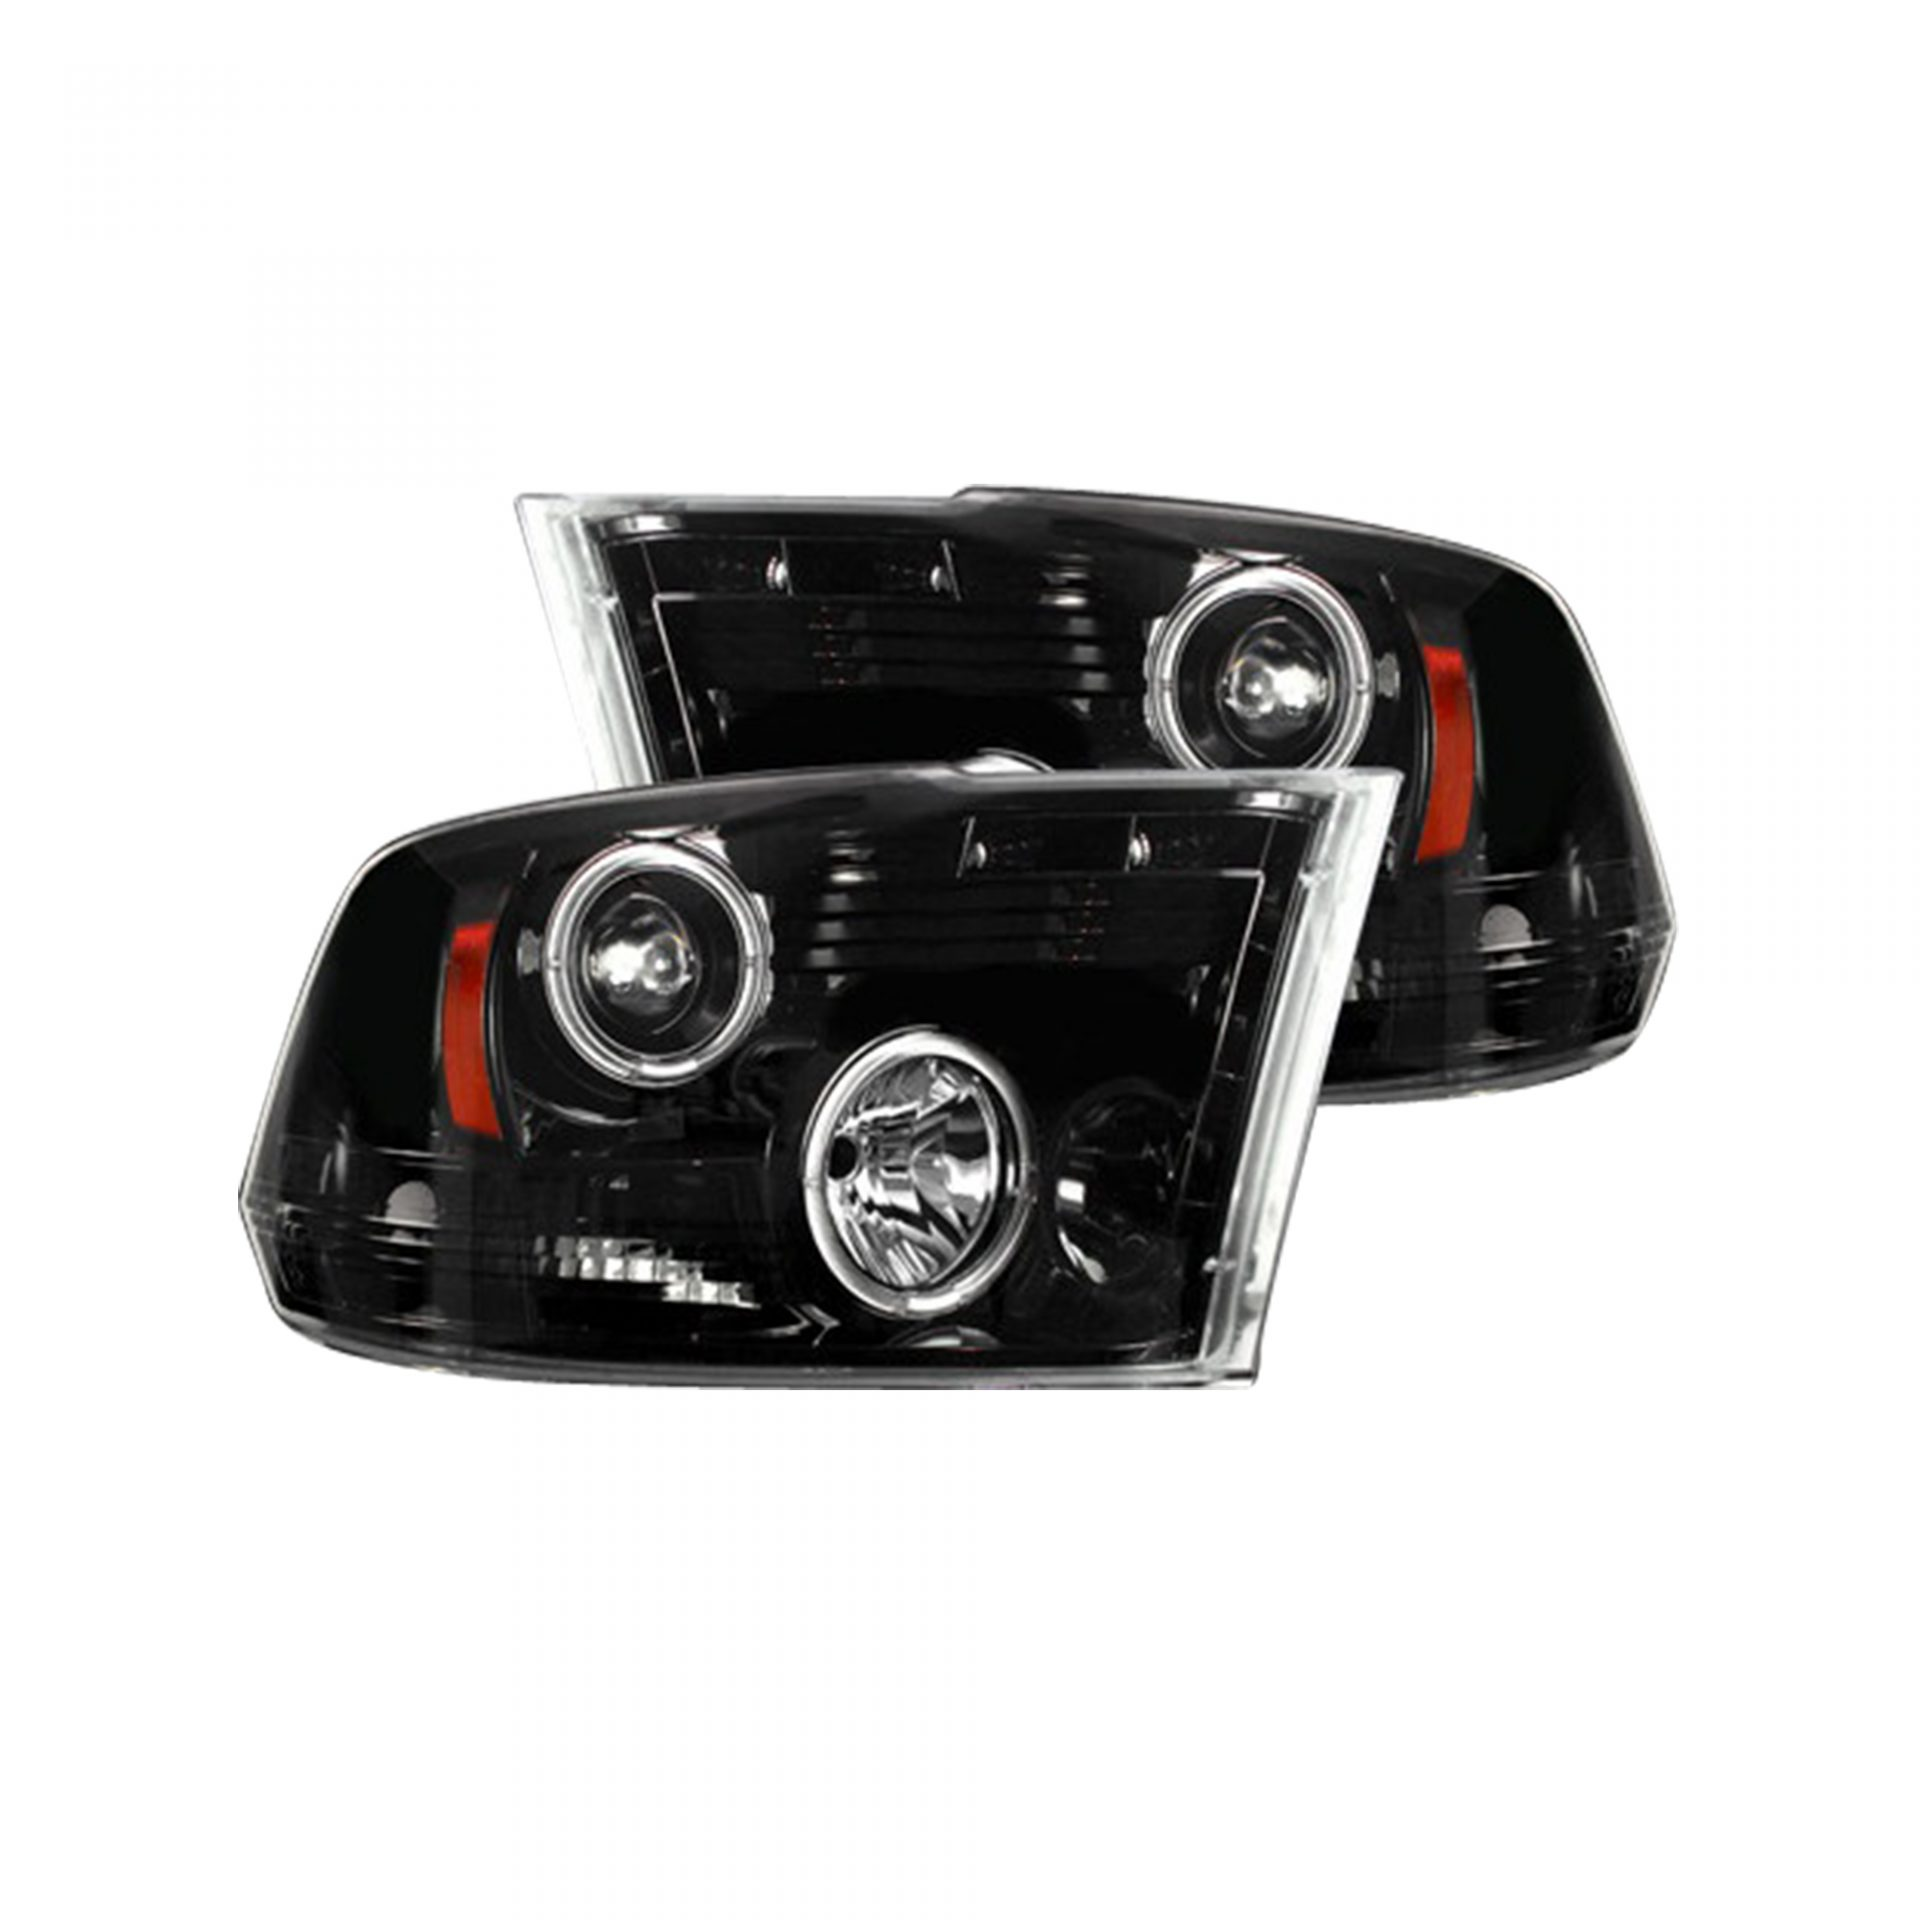 hight resolution of recon 264270bkcc dodge ram 09 19 1500 10 19 2500 3500 projector headlights w ccfl halos drl smoked black